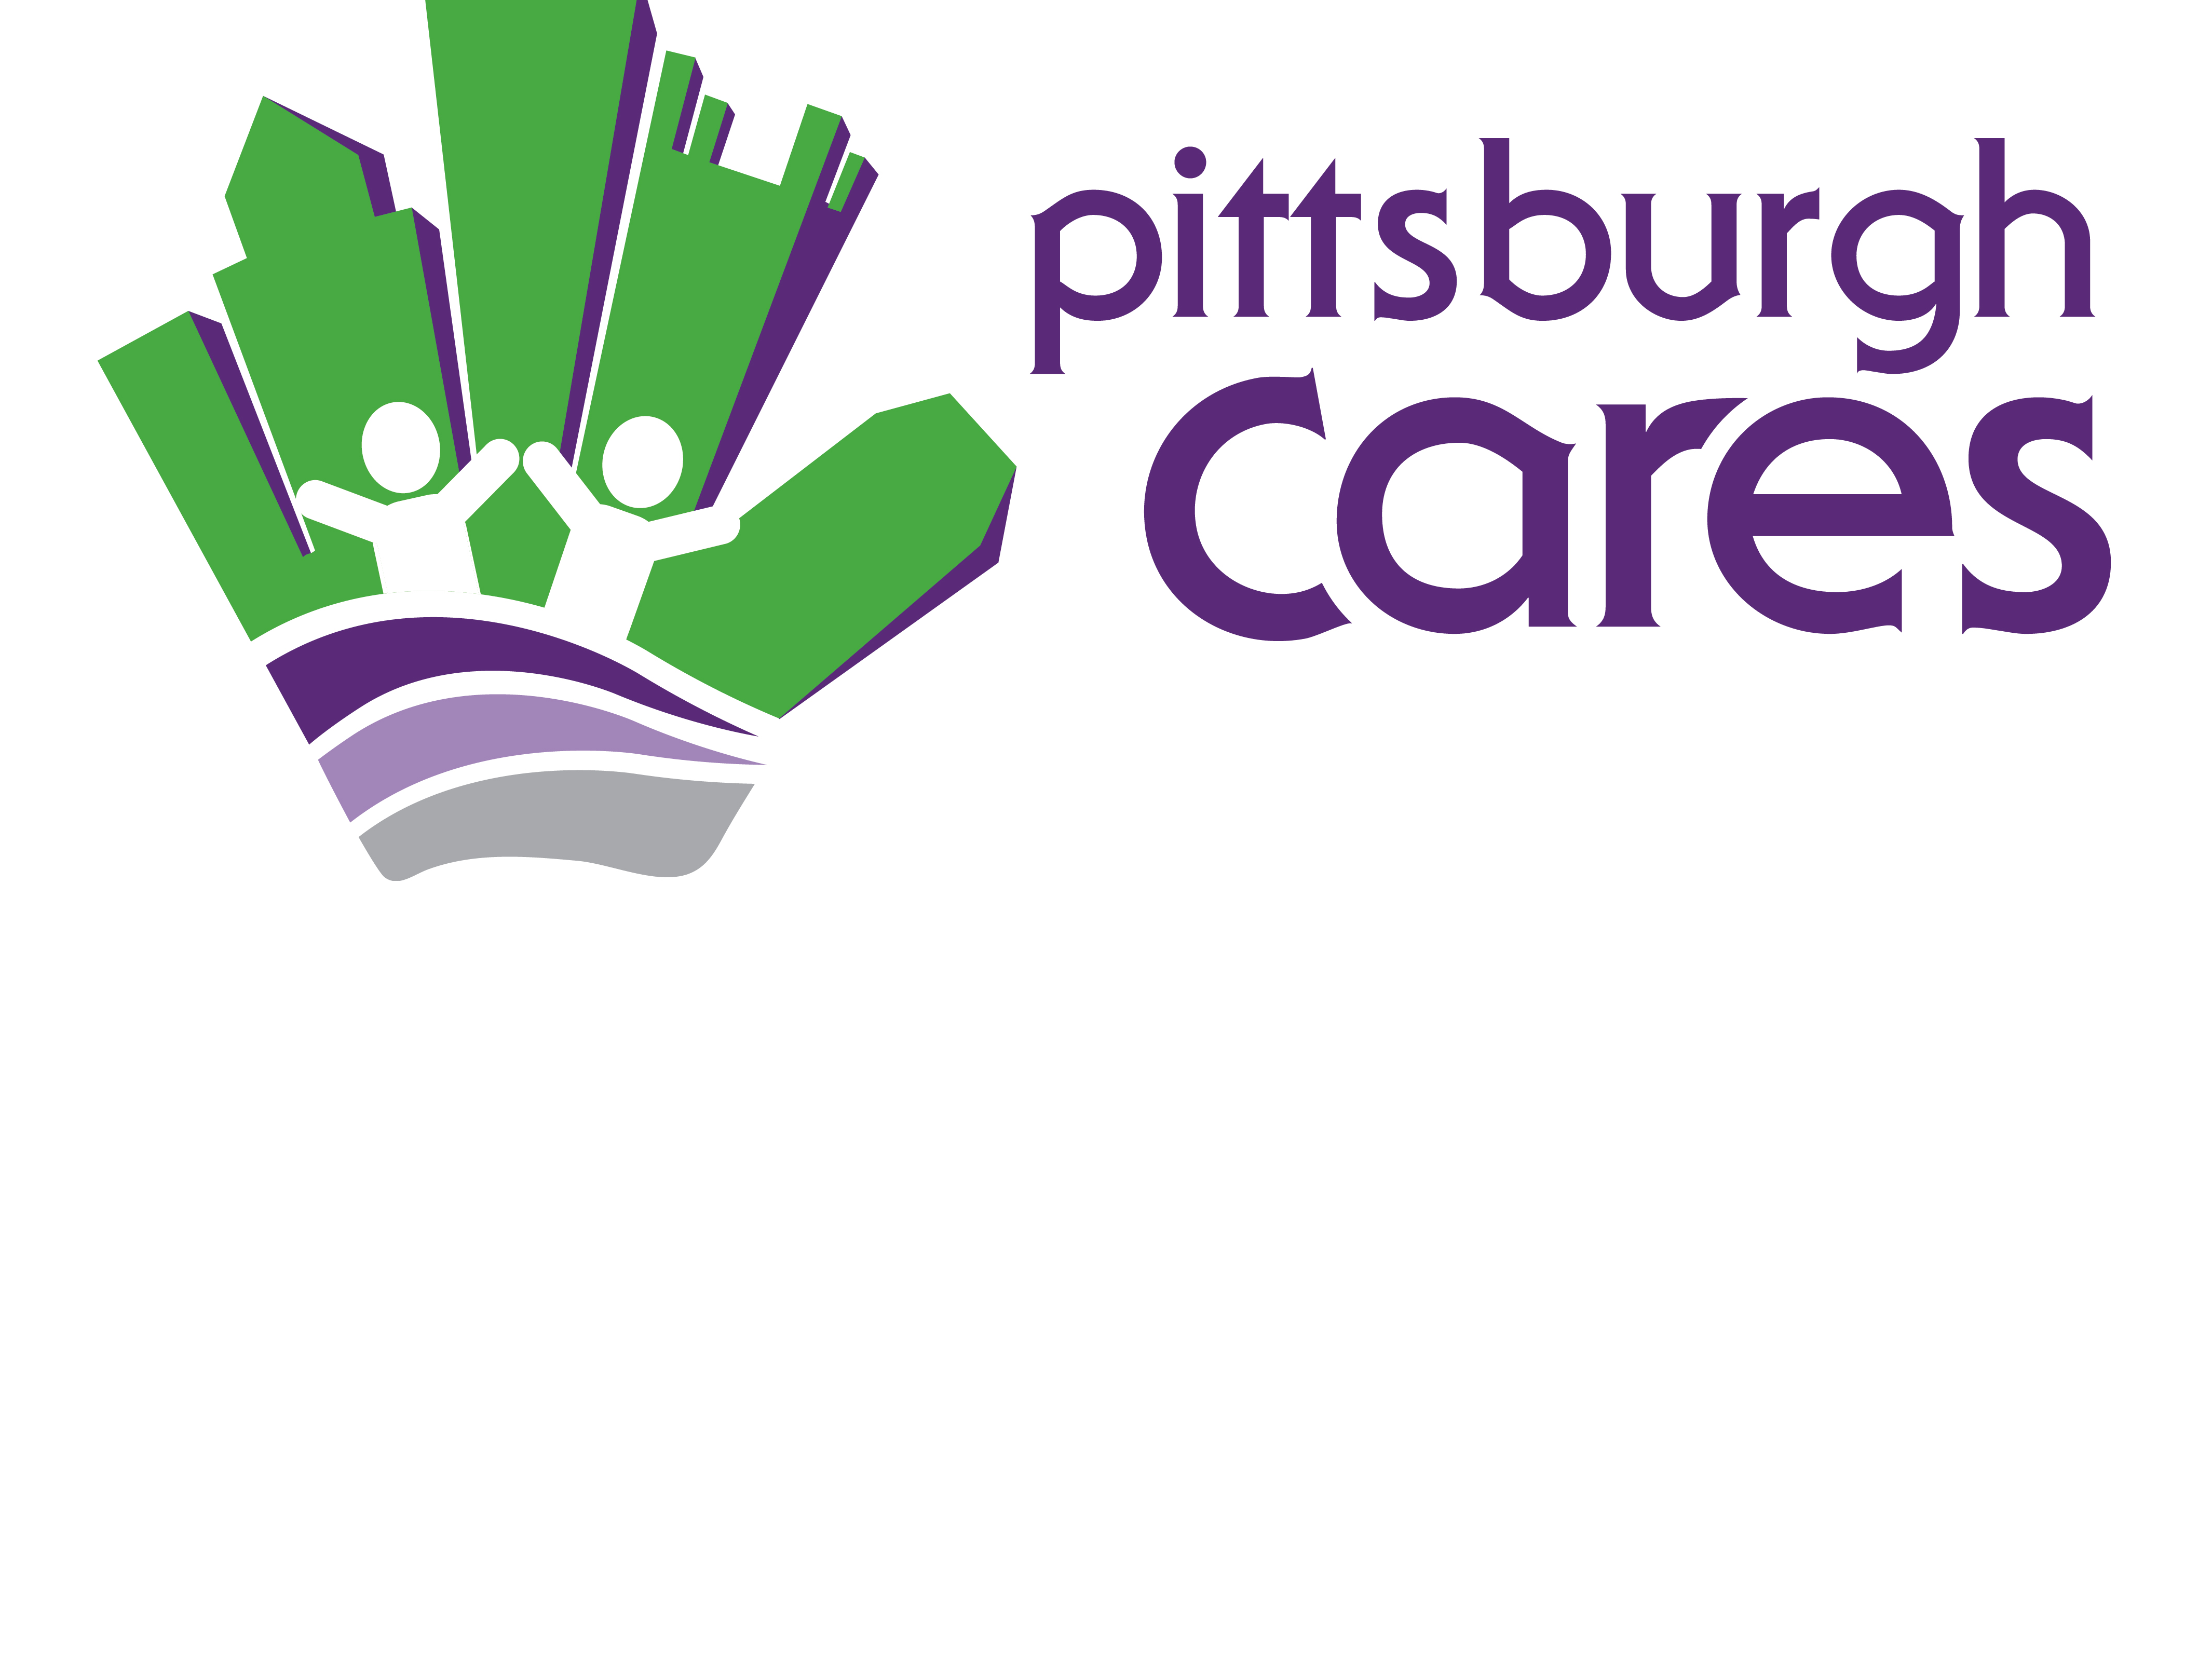 pittsburgh cares volunteer sign up